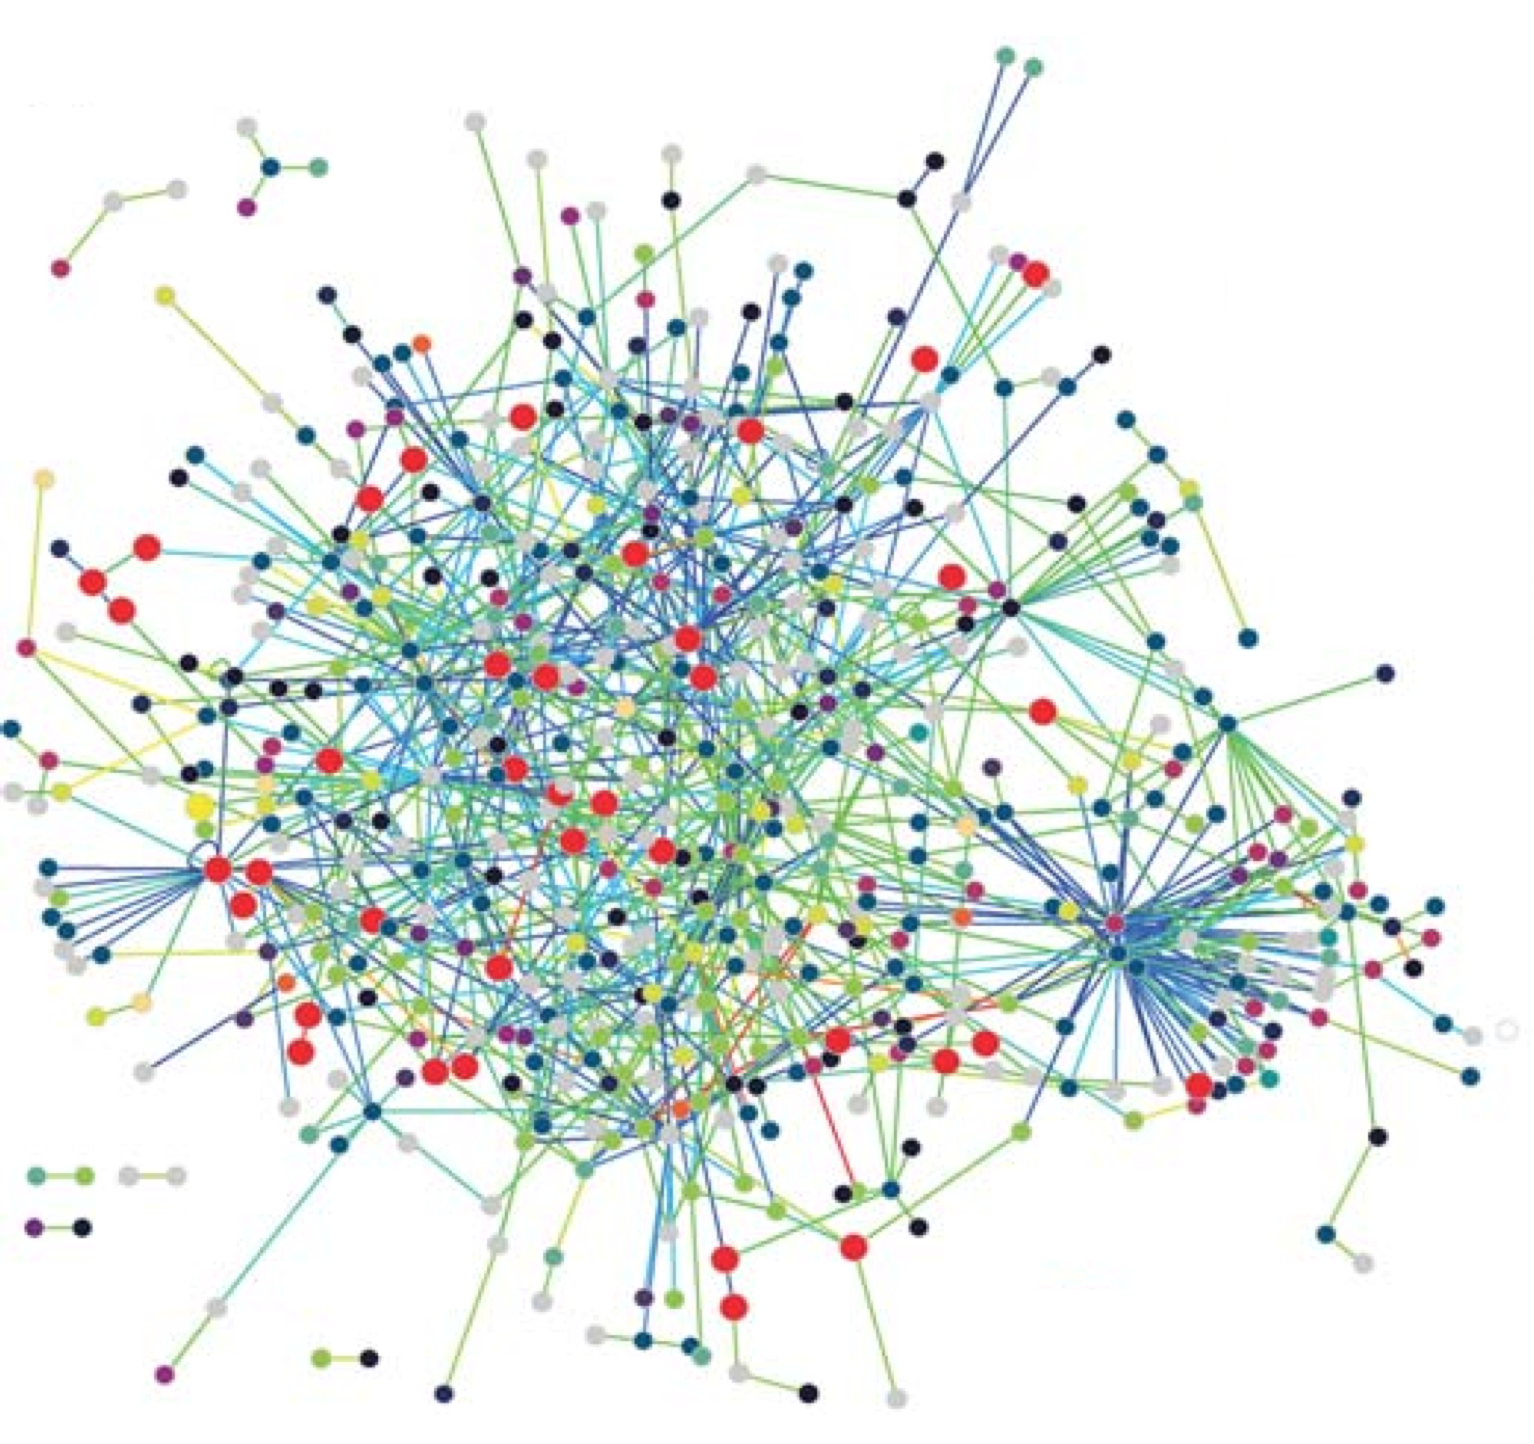 http://upload.wikimedia.org/wikipedia/commons/b/b4/The_protein_interaction_network_of_Treponema_pallidum.png